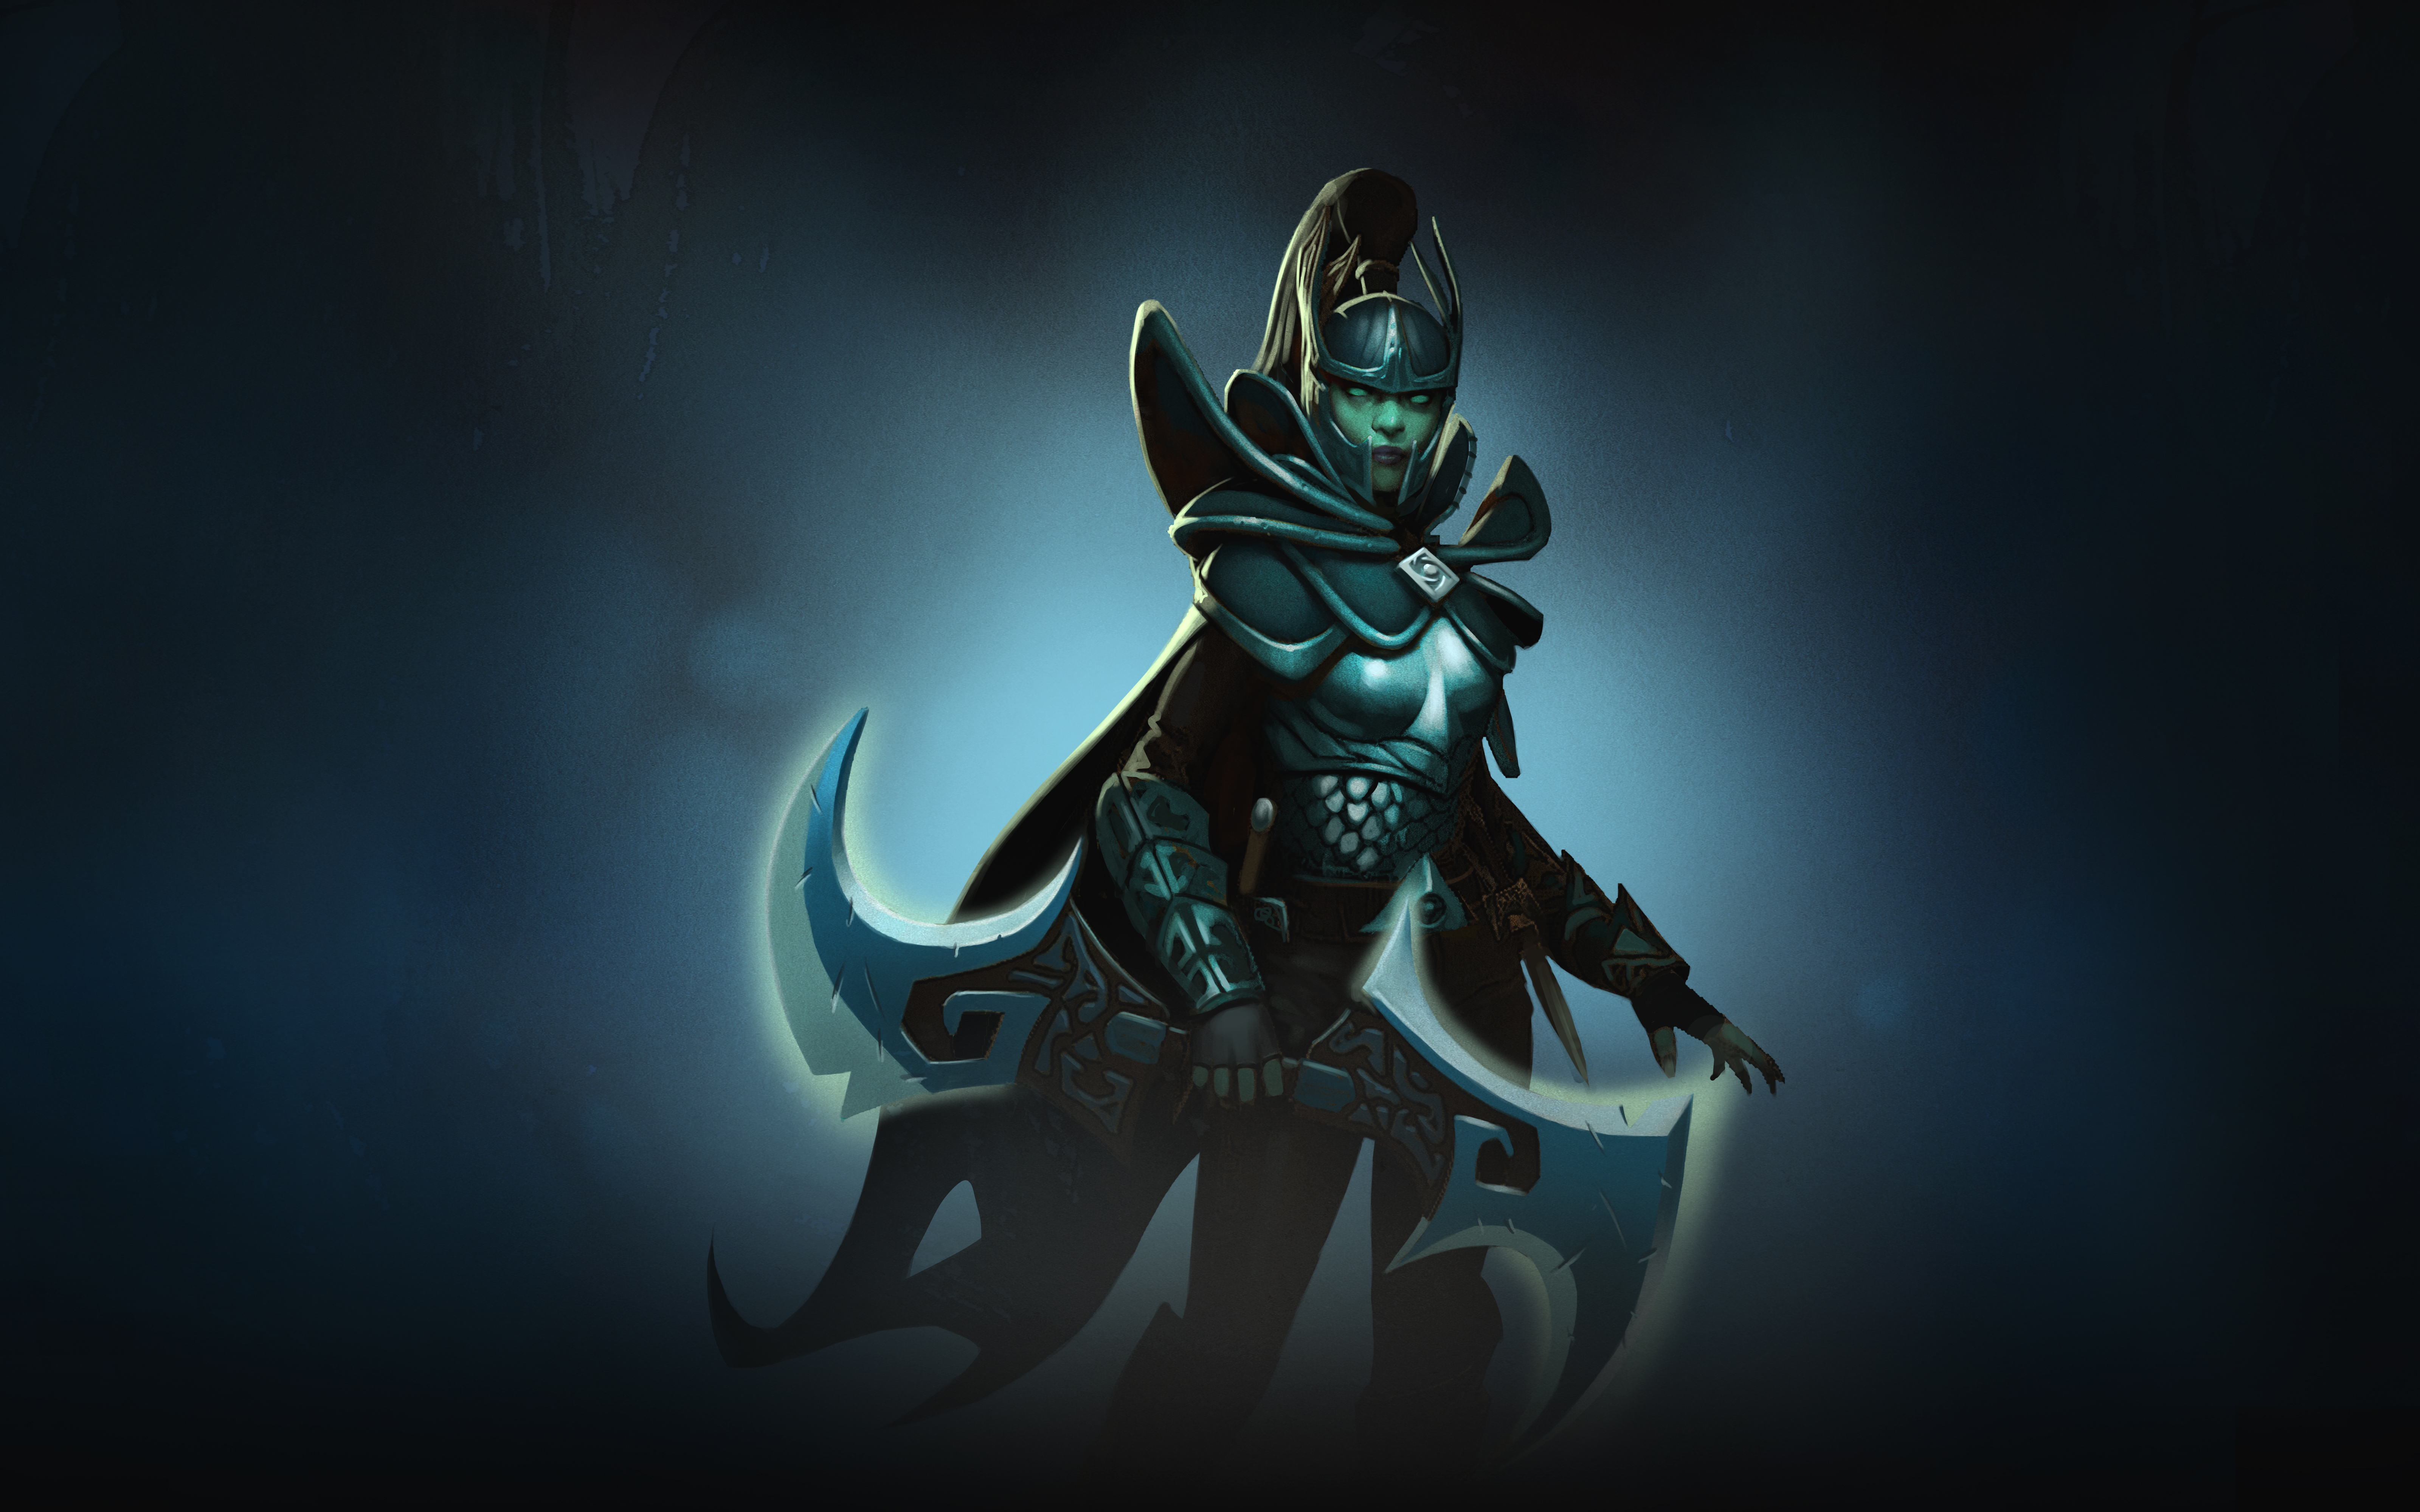 phantom_assassin_wallpaper.jpg